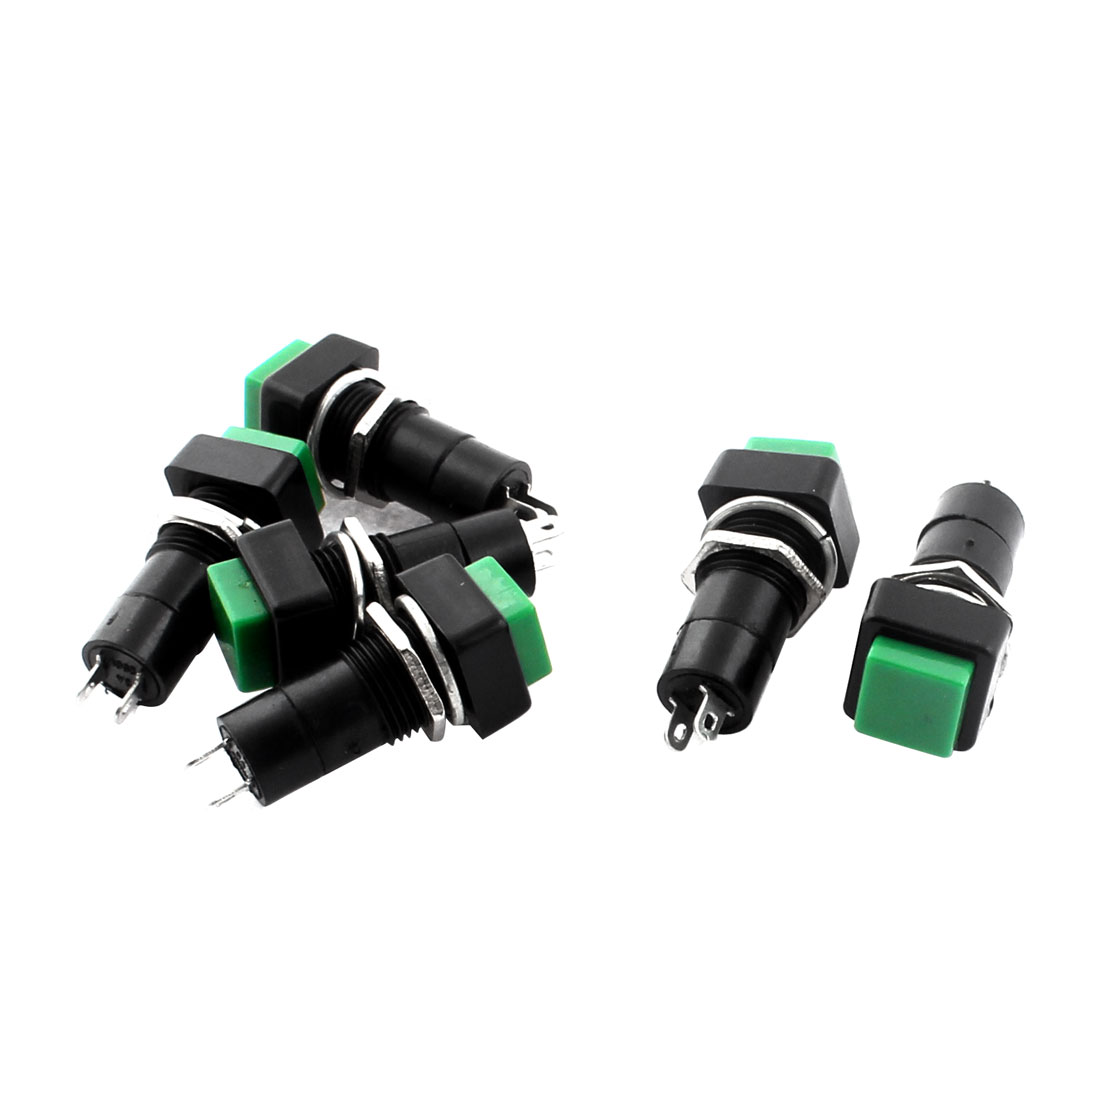 250V 3A SPST 2 Terminals Latching Square Head Push Button Switch Green 6pcs